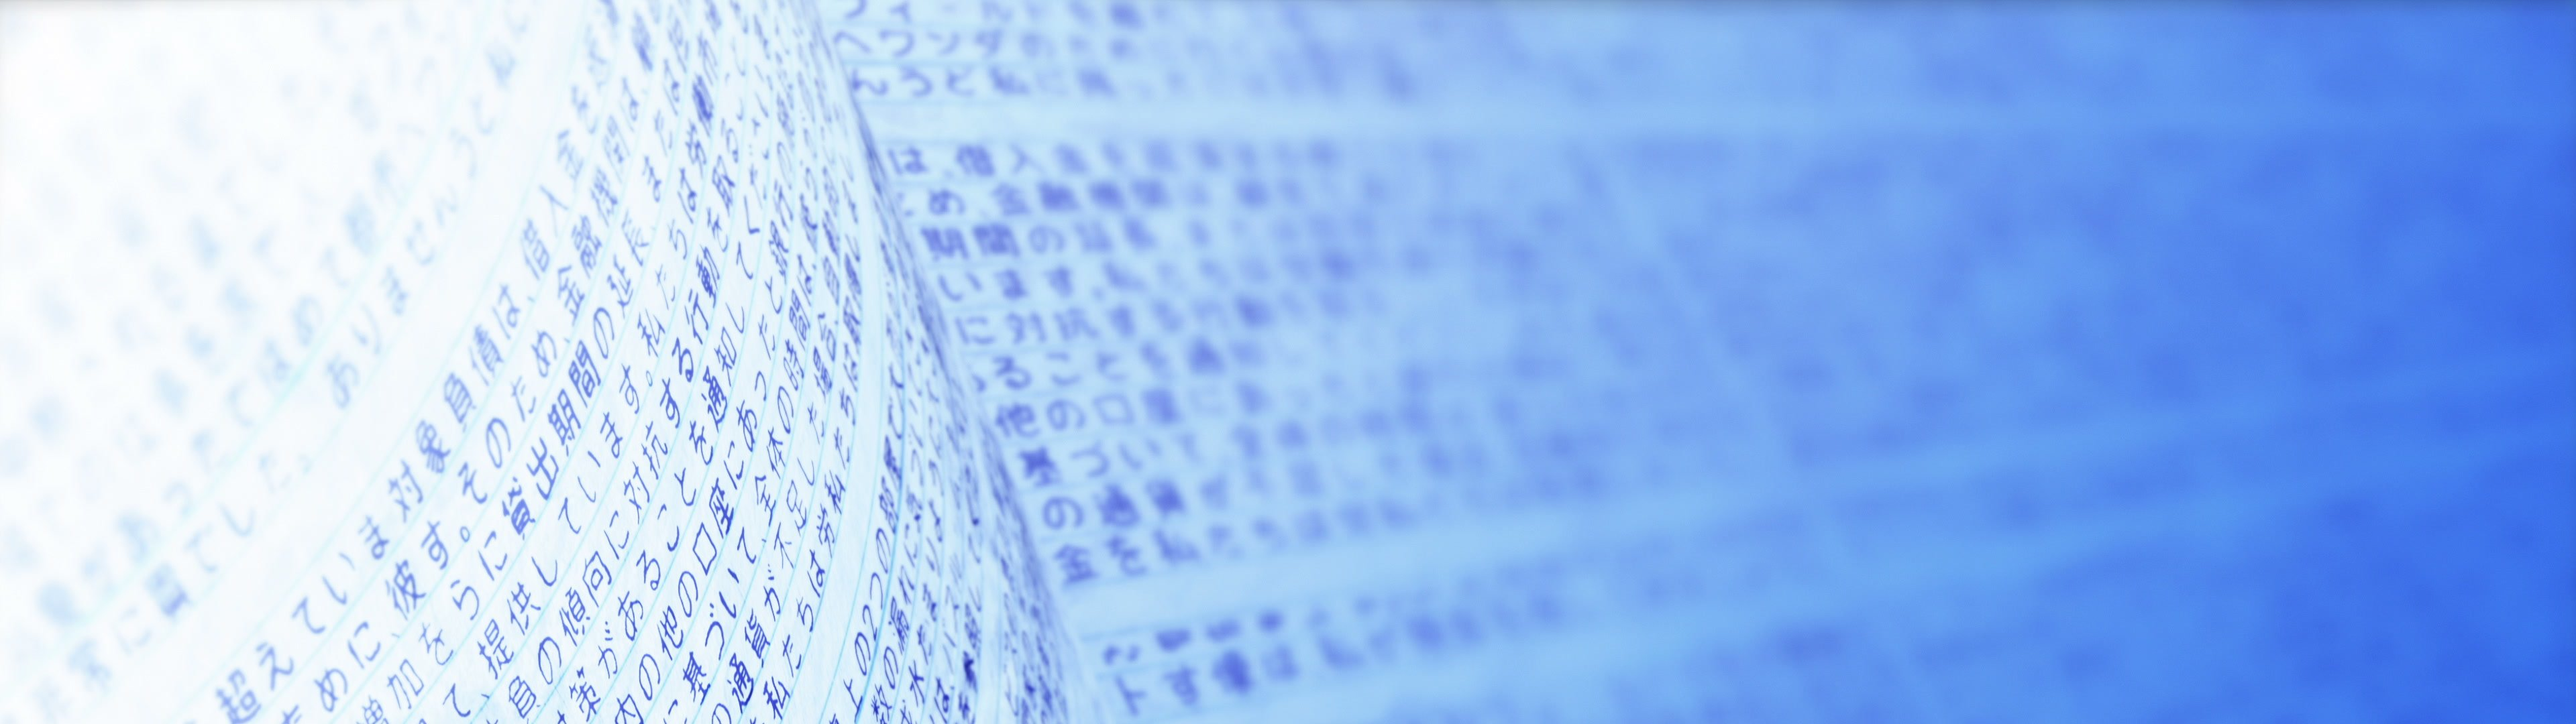 Close up of handwritten notes in Japanese. Seamless background loop in blue. | Undefined, random text with words in Japanese. Handwritten letter. Handwriting. Calligraphy. Manuscript. Script. Font. Old handwriting. Hastily scrawled handwriting. Abstract texture background loop with Copy Space. Calligraphic handwritten script. - ID:24263